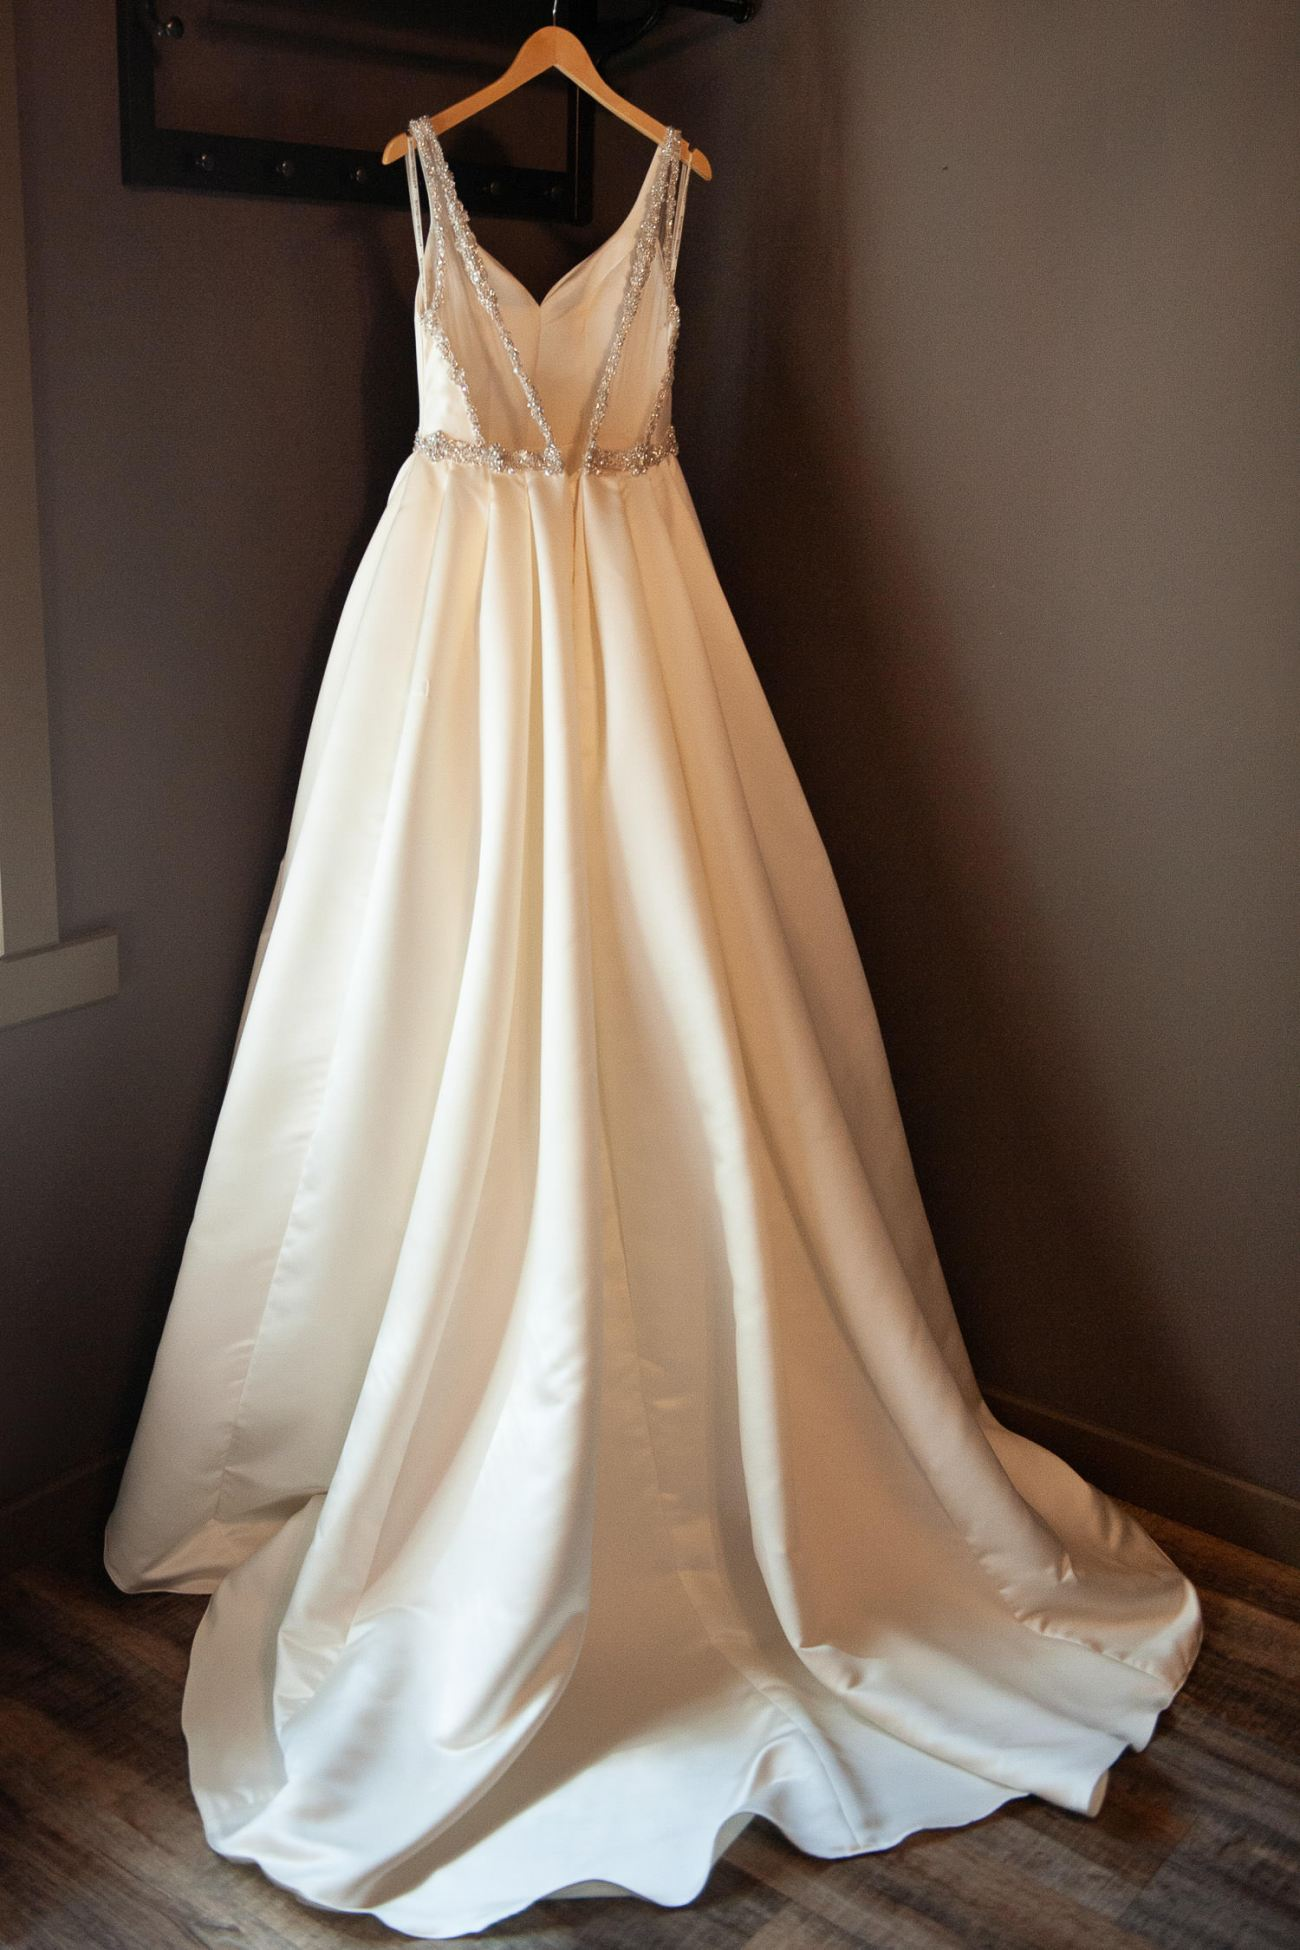 Bride's gown before her Creekside Villa wedding captured by Tara Whittaker Photography